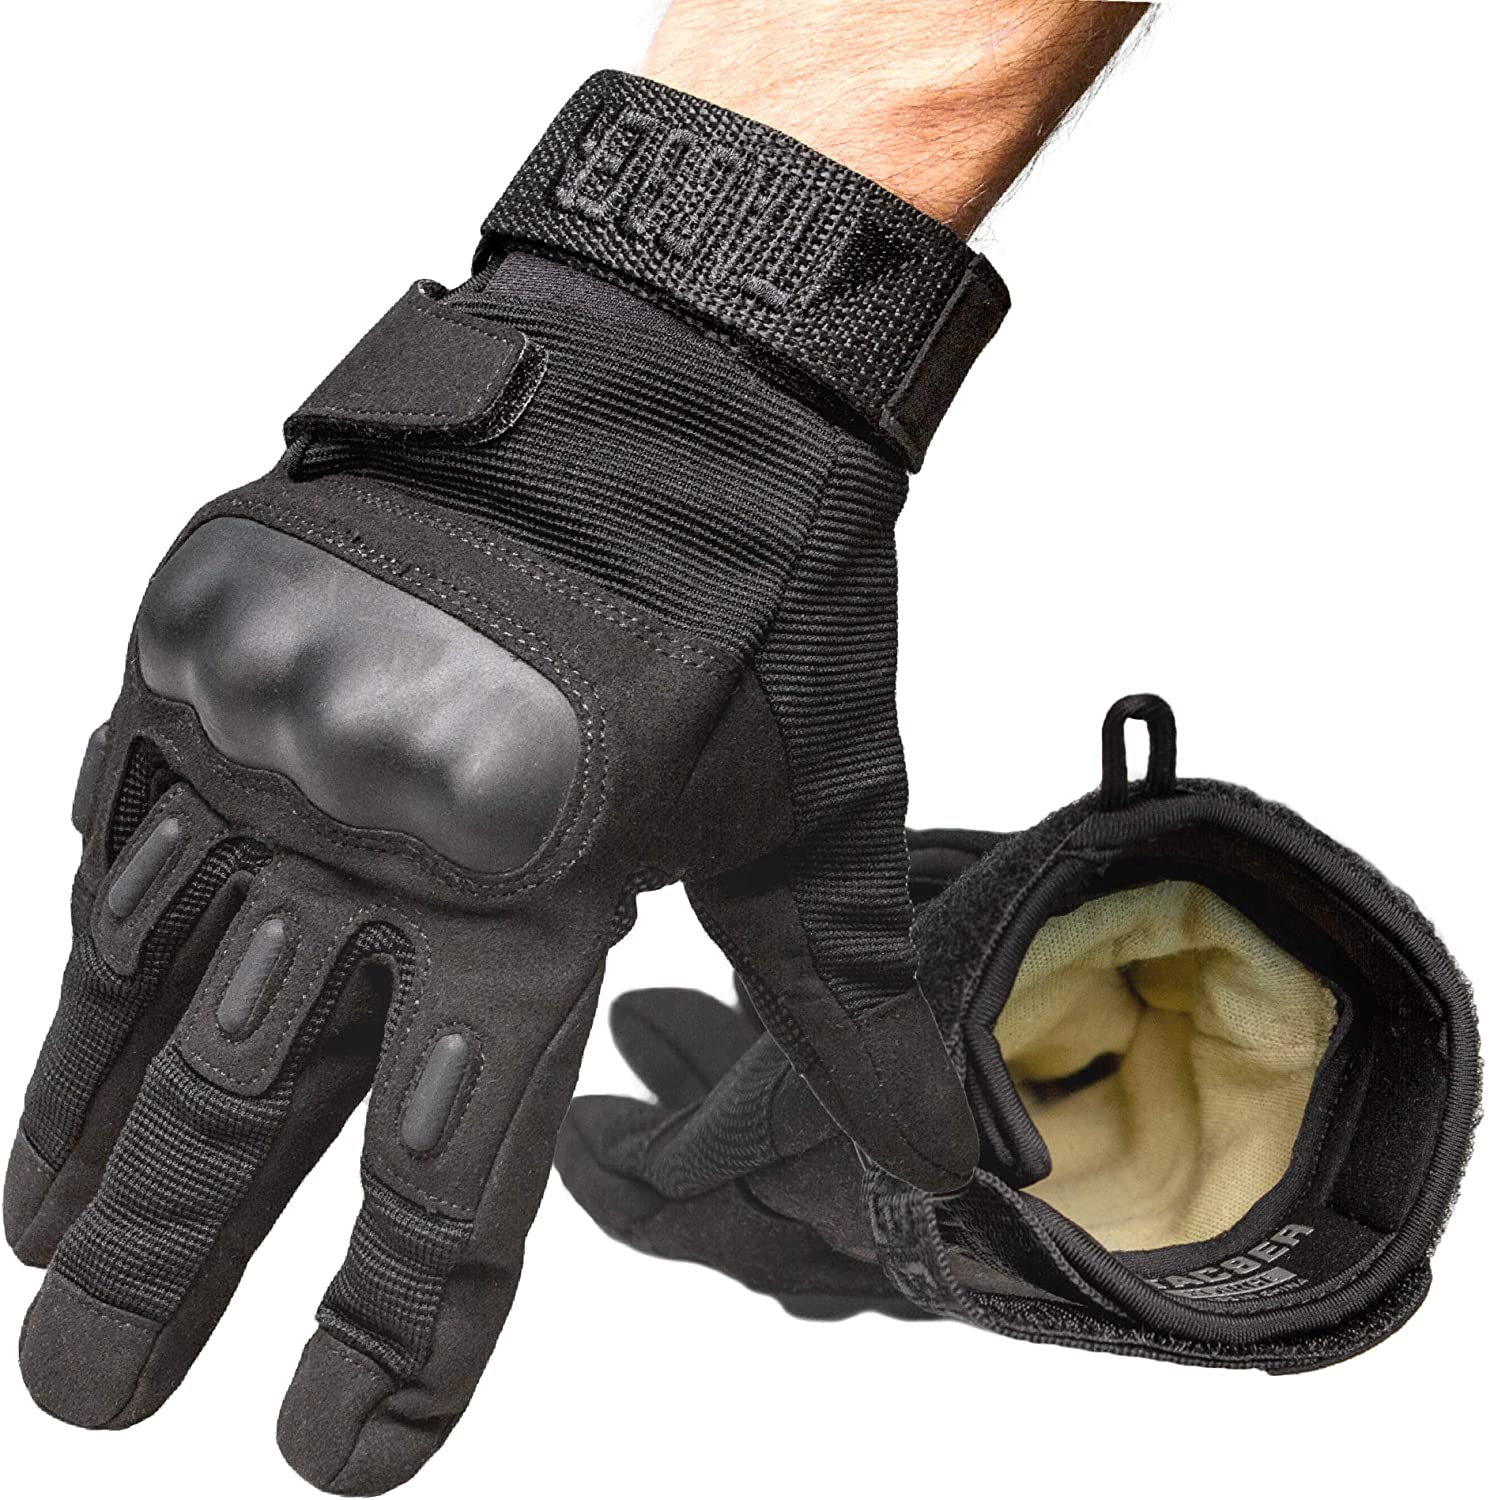 Tac9er Kevlar Lined Tactical Gloves